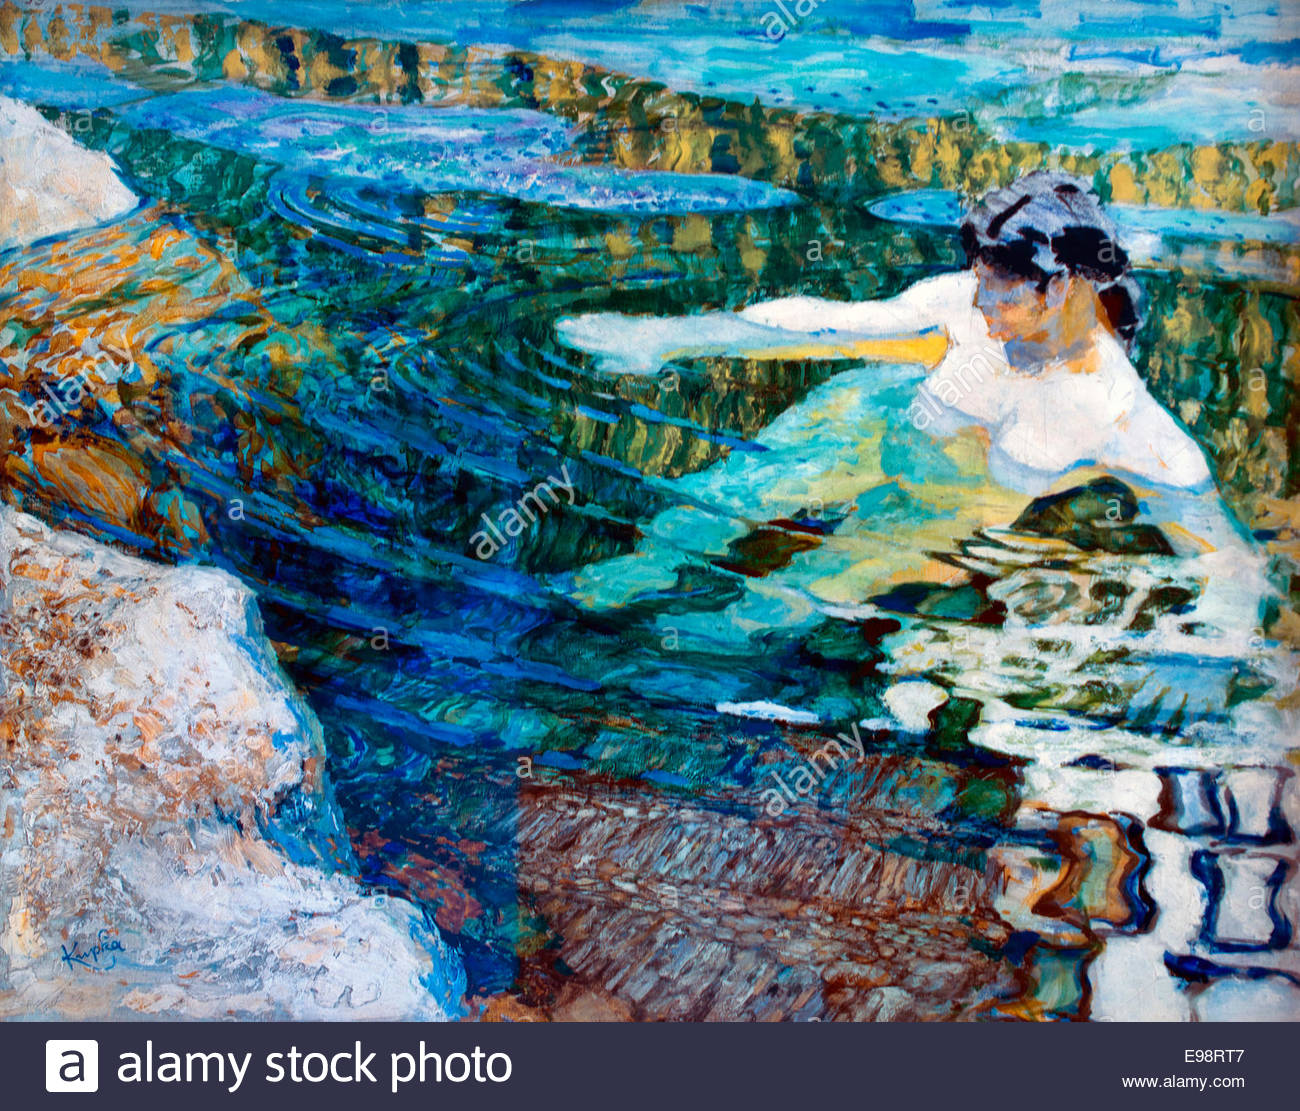 Eau , La Baigneuse - Water, The Bather 1906 by Frantisek Kupka  Czech Republic - Stock Image